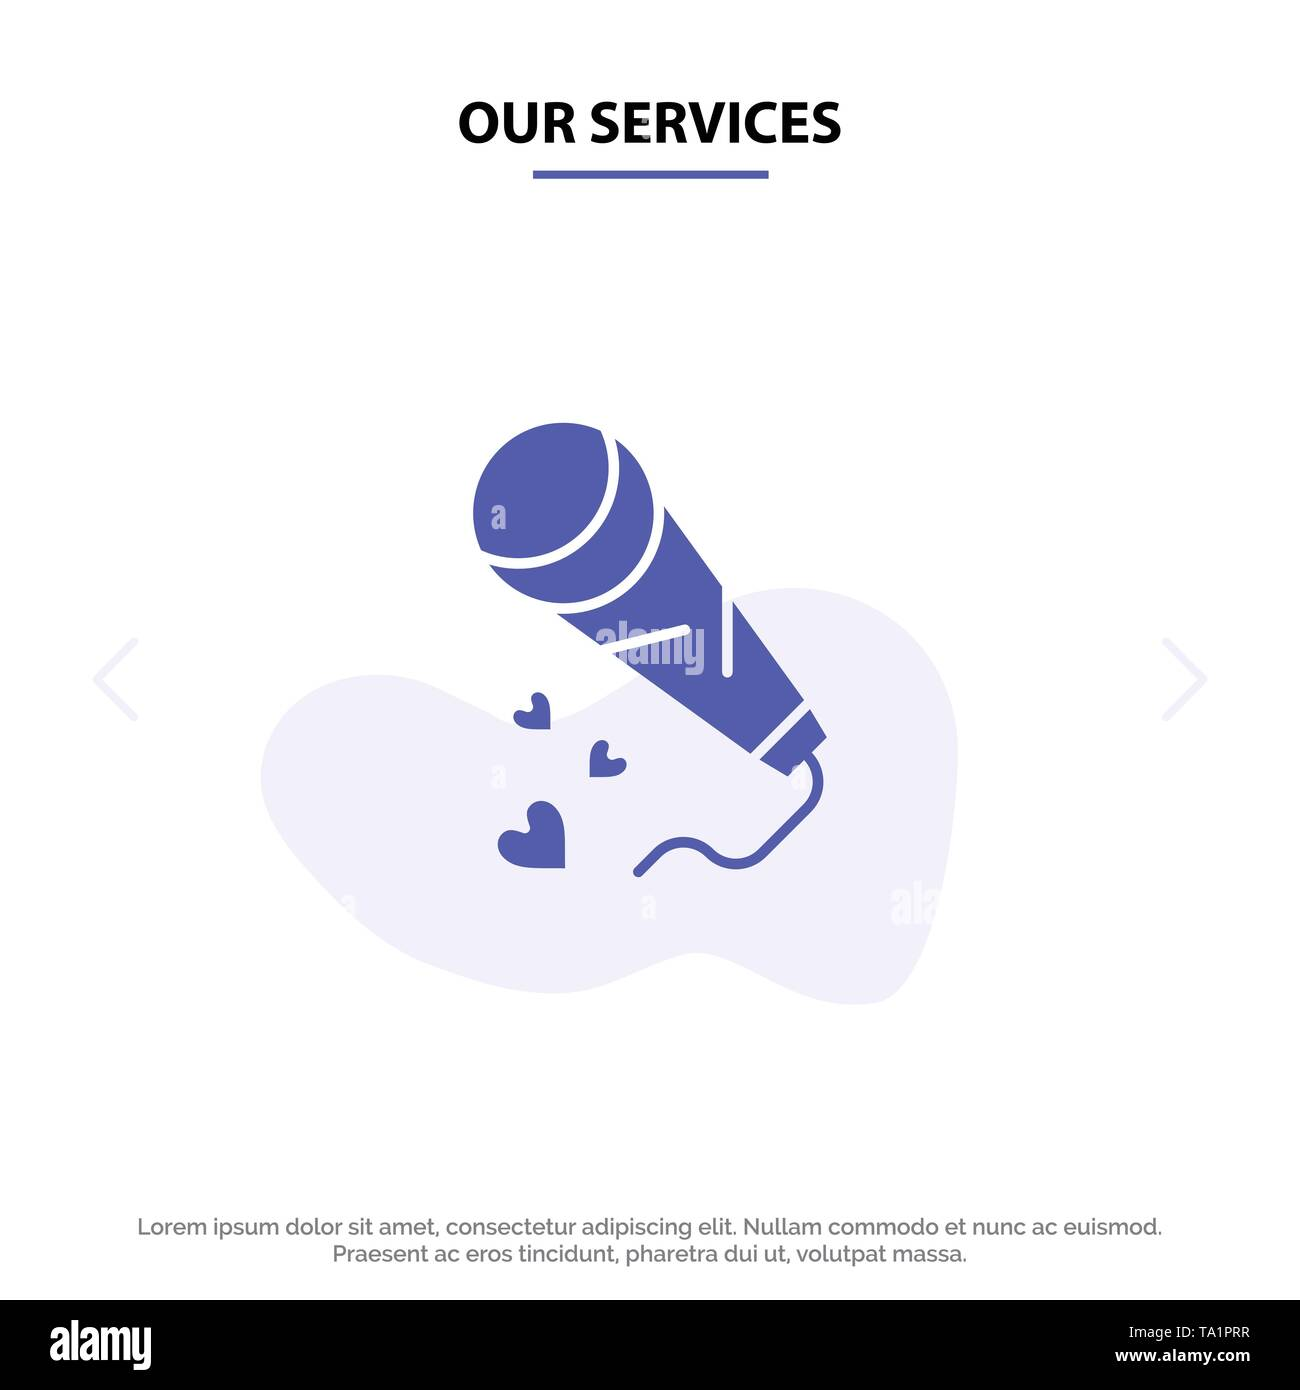 Our Services Mic, Hearts, Love, Loving, Wedding Solid Glyph Icon Web card Template - Stock Image